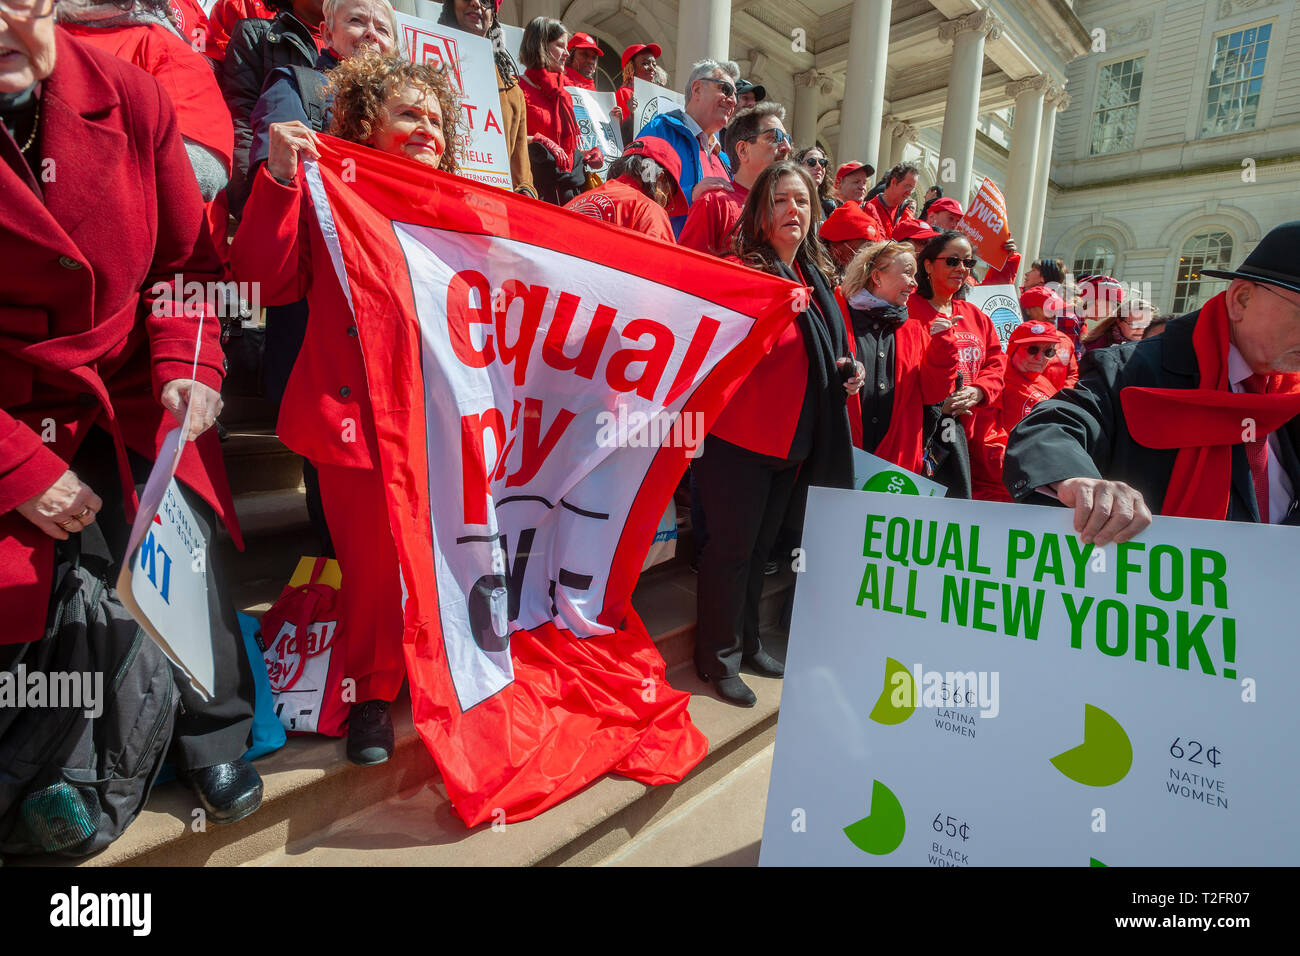 New York, USA. 02nd Apr, 2019. Activists, community leaders, union members and politicians gather on the steps of City Hall in New York on Tuesday, April 2, 2019 to rally against pay disparity on the 13th annual Equal Pay Day. Worldwide women on average earn 87 cents for every dollar her male counterpart earns with dramatic adjustments for women of color. Credit: Richard Levine/Alamy Live News - Stock Image